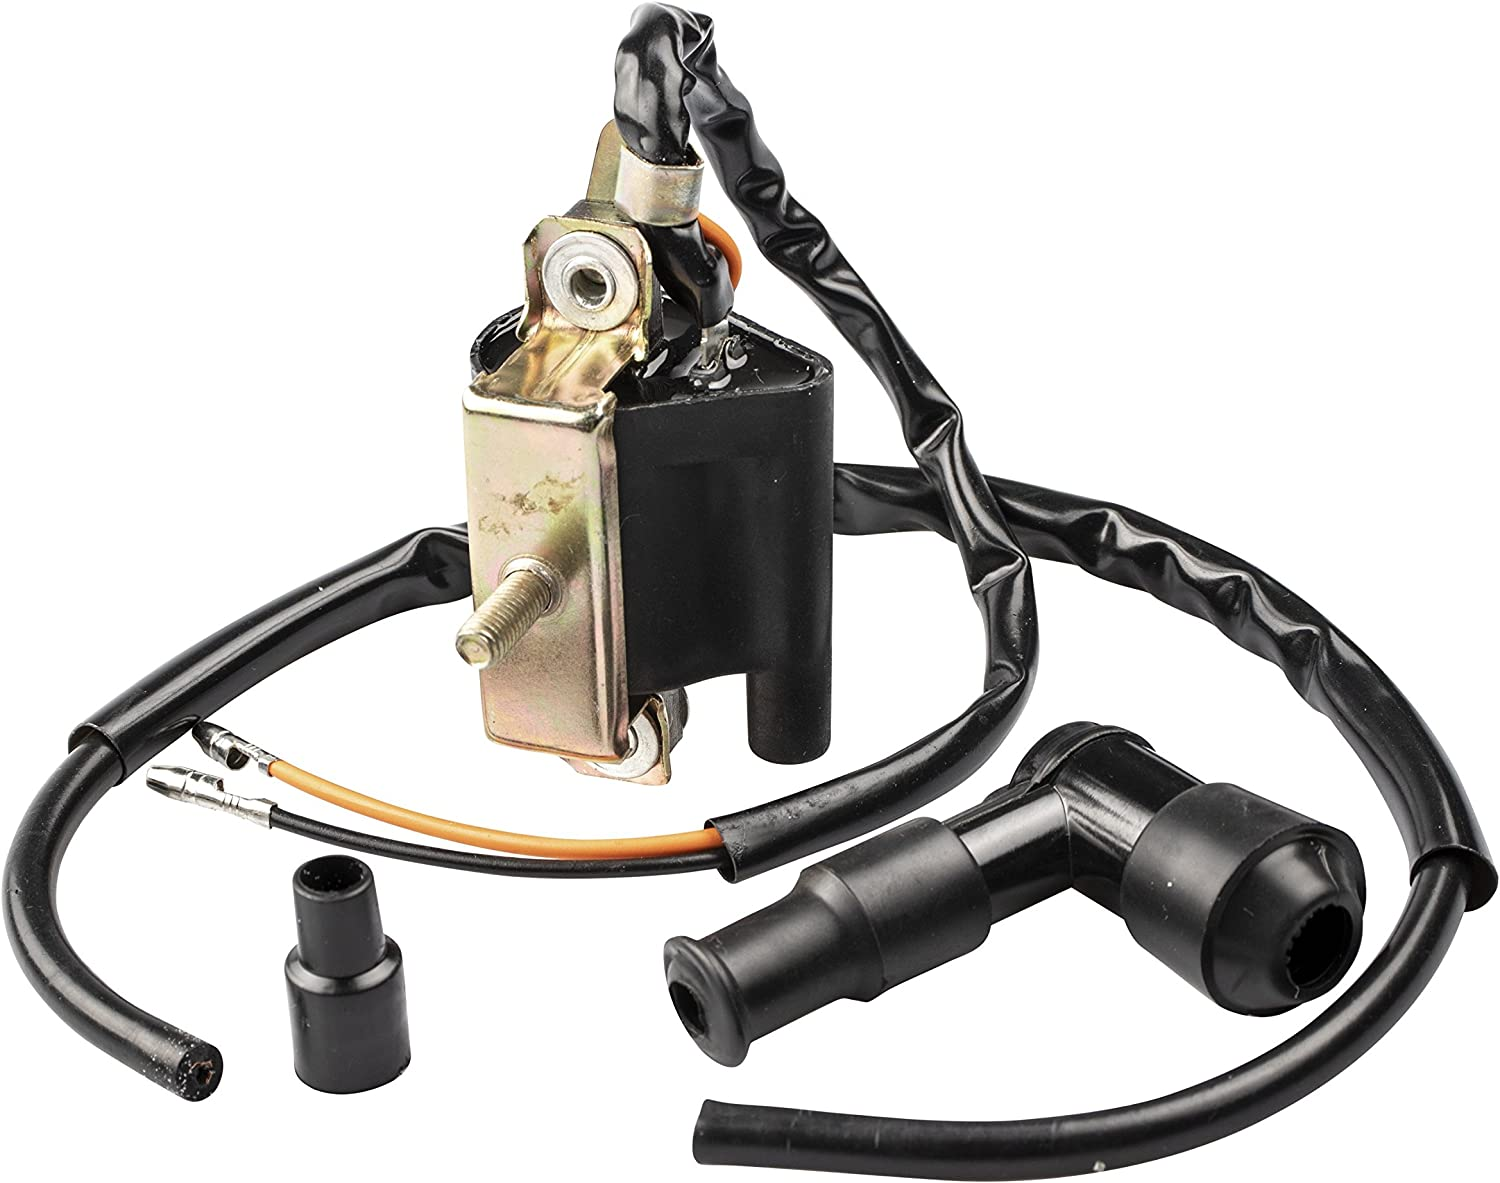 12v Performance Ignition Coil For Honda Ct70 Ct90 C70 Cl70 Xl70 Z50 Scooter